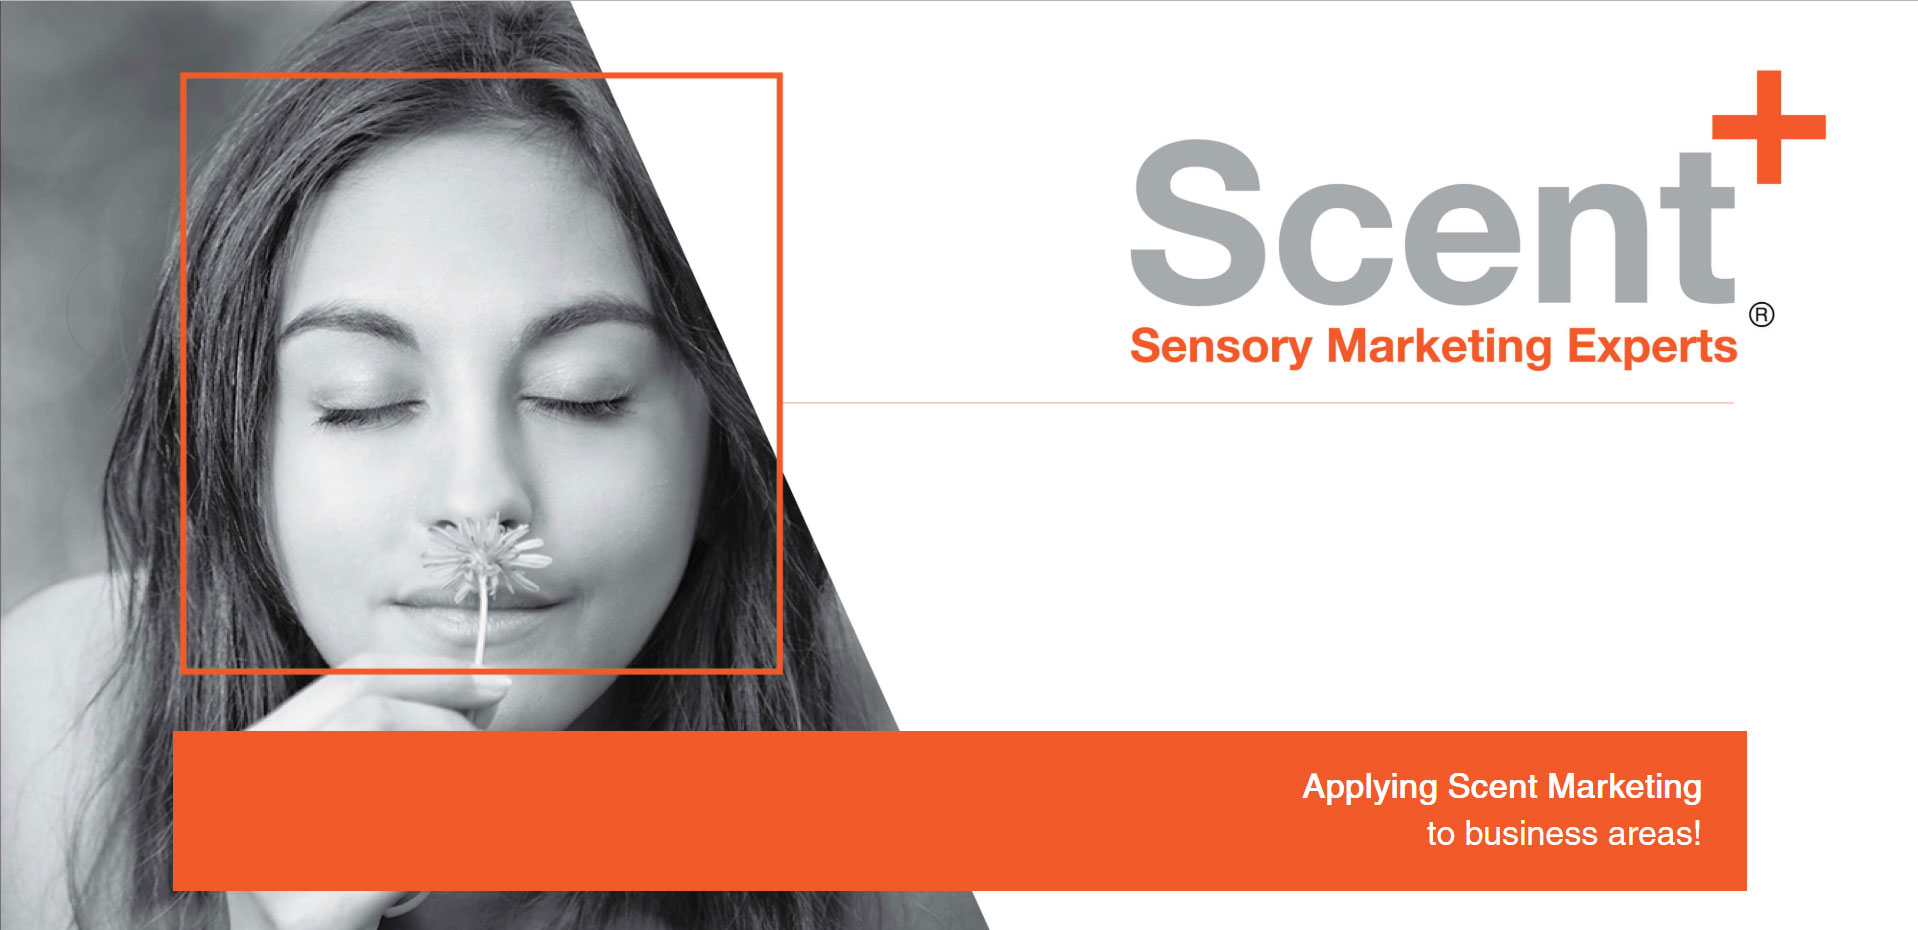 Scent + | Sensory Marketing Experts